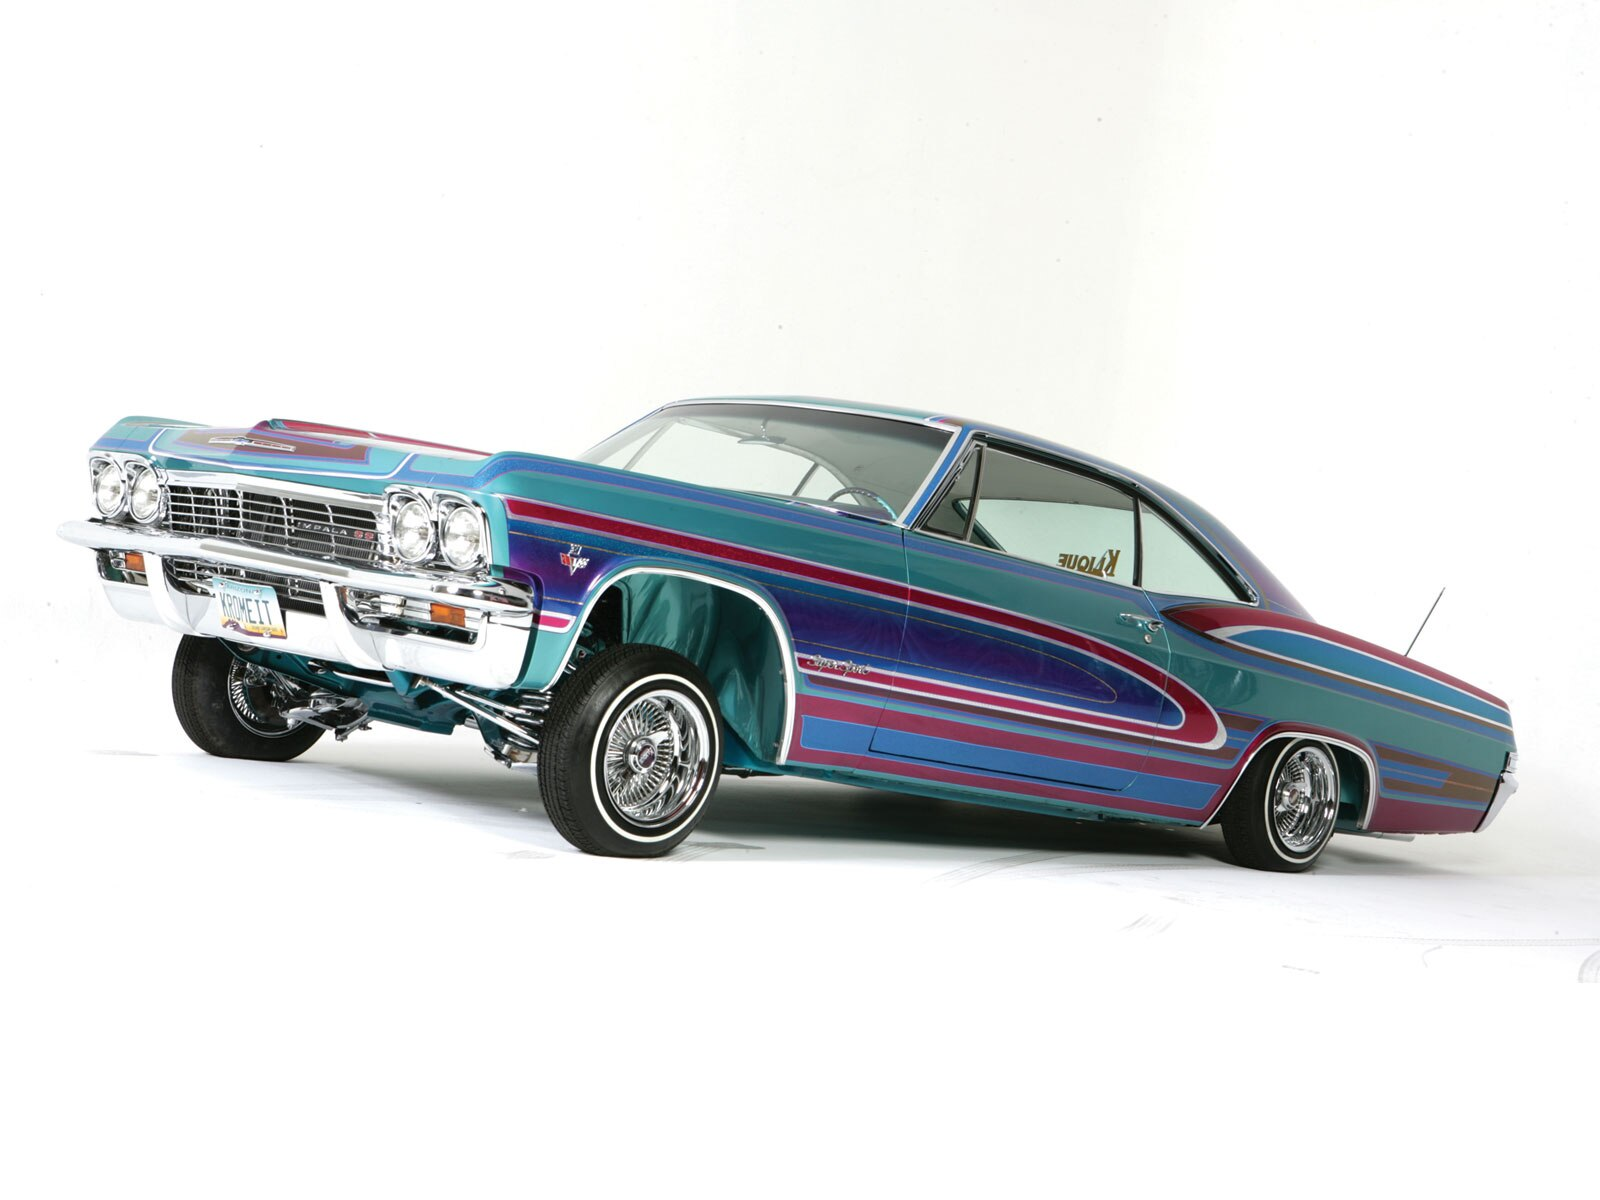 lrmp-1010-16-o-1965-chevy-impala-side-view3